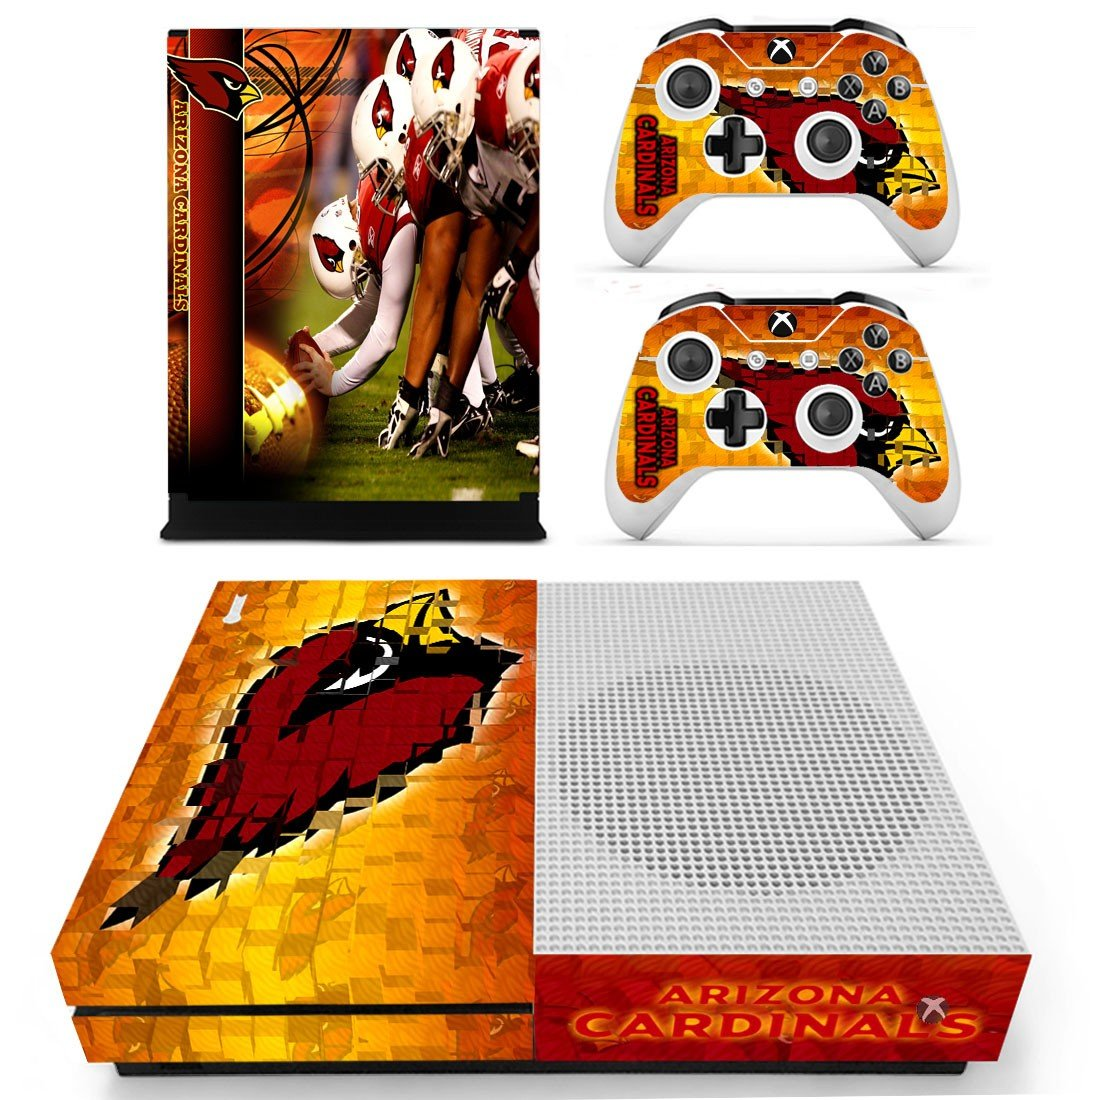 Arizona Cardinals skin decal for Xbox one S console and controllers